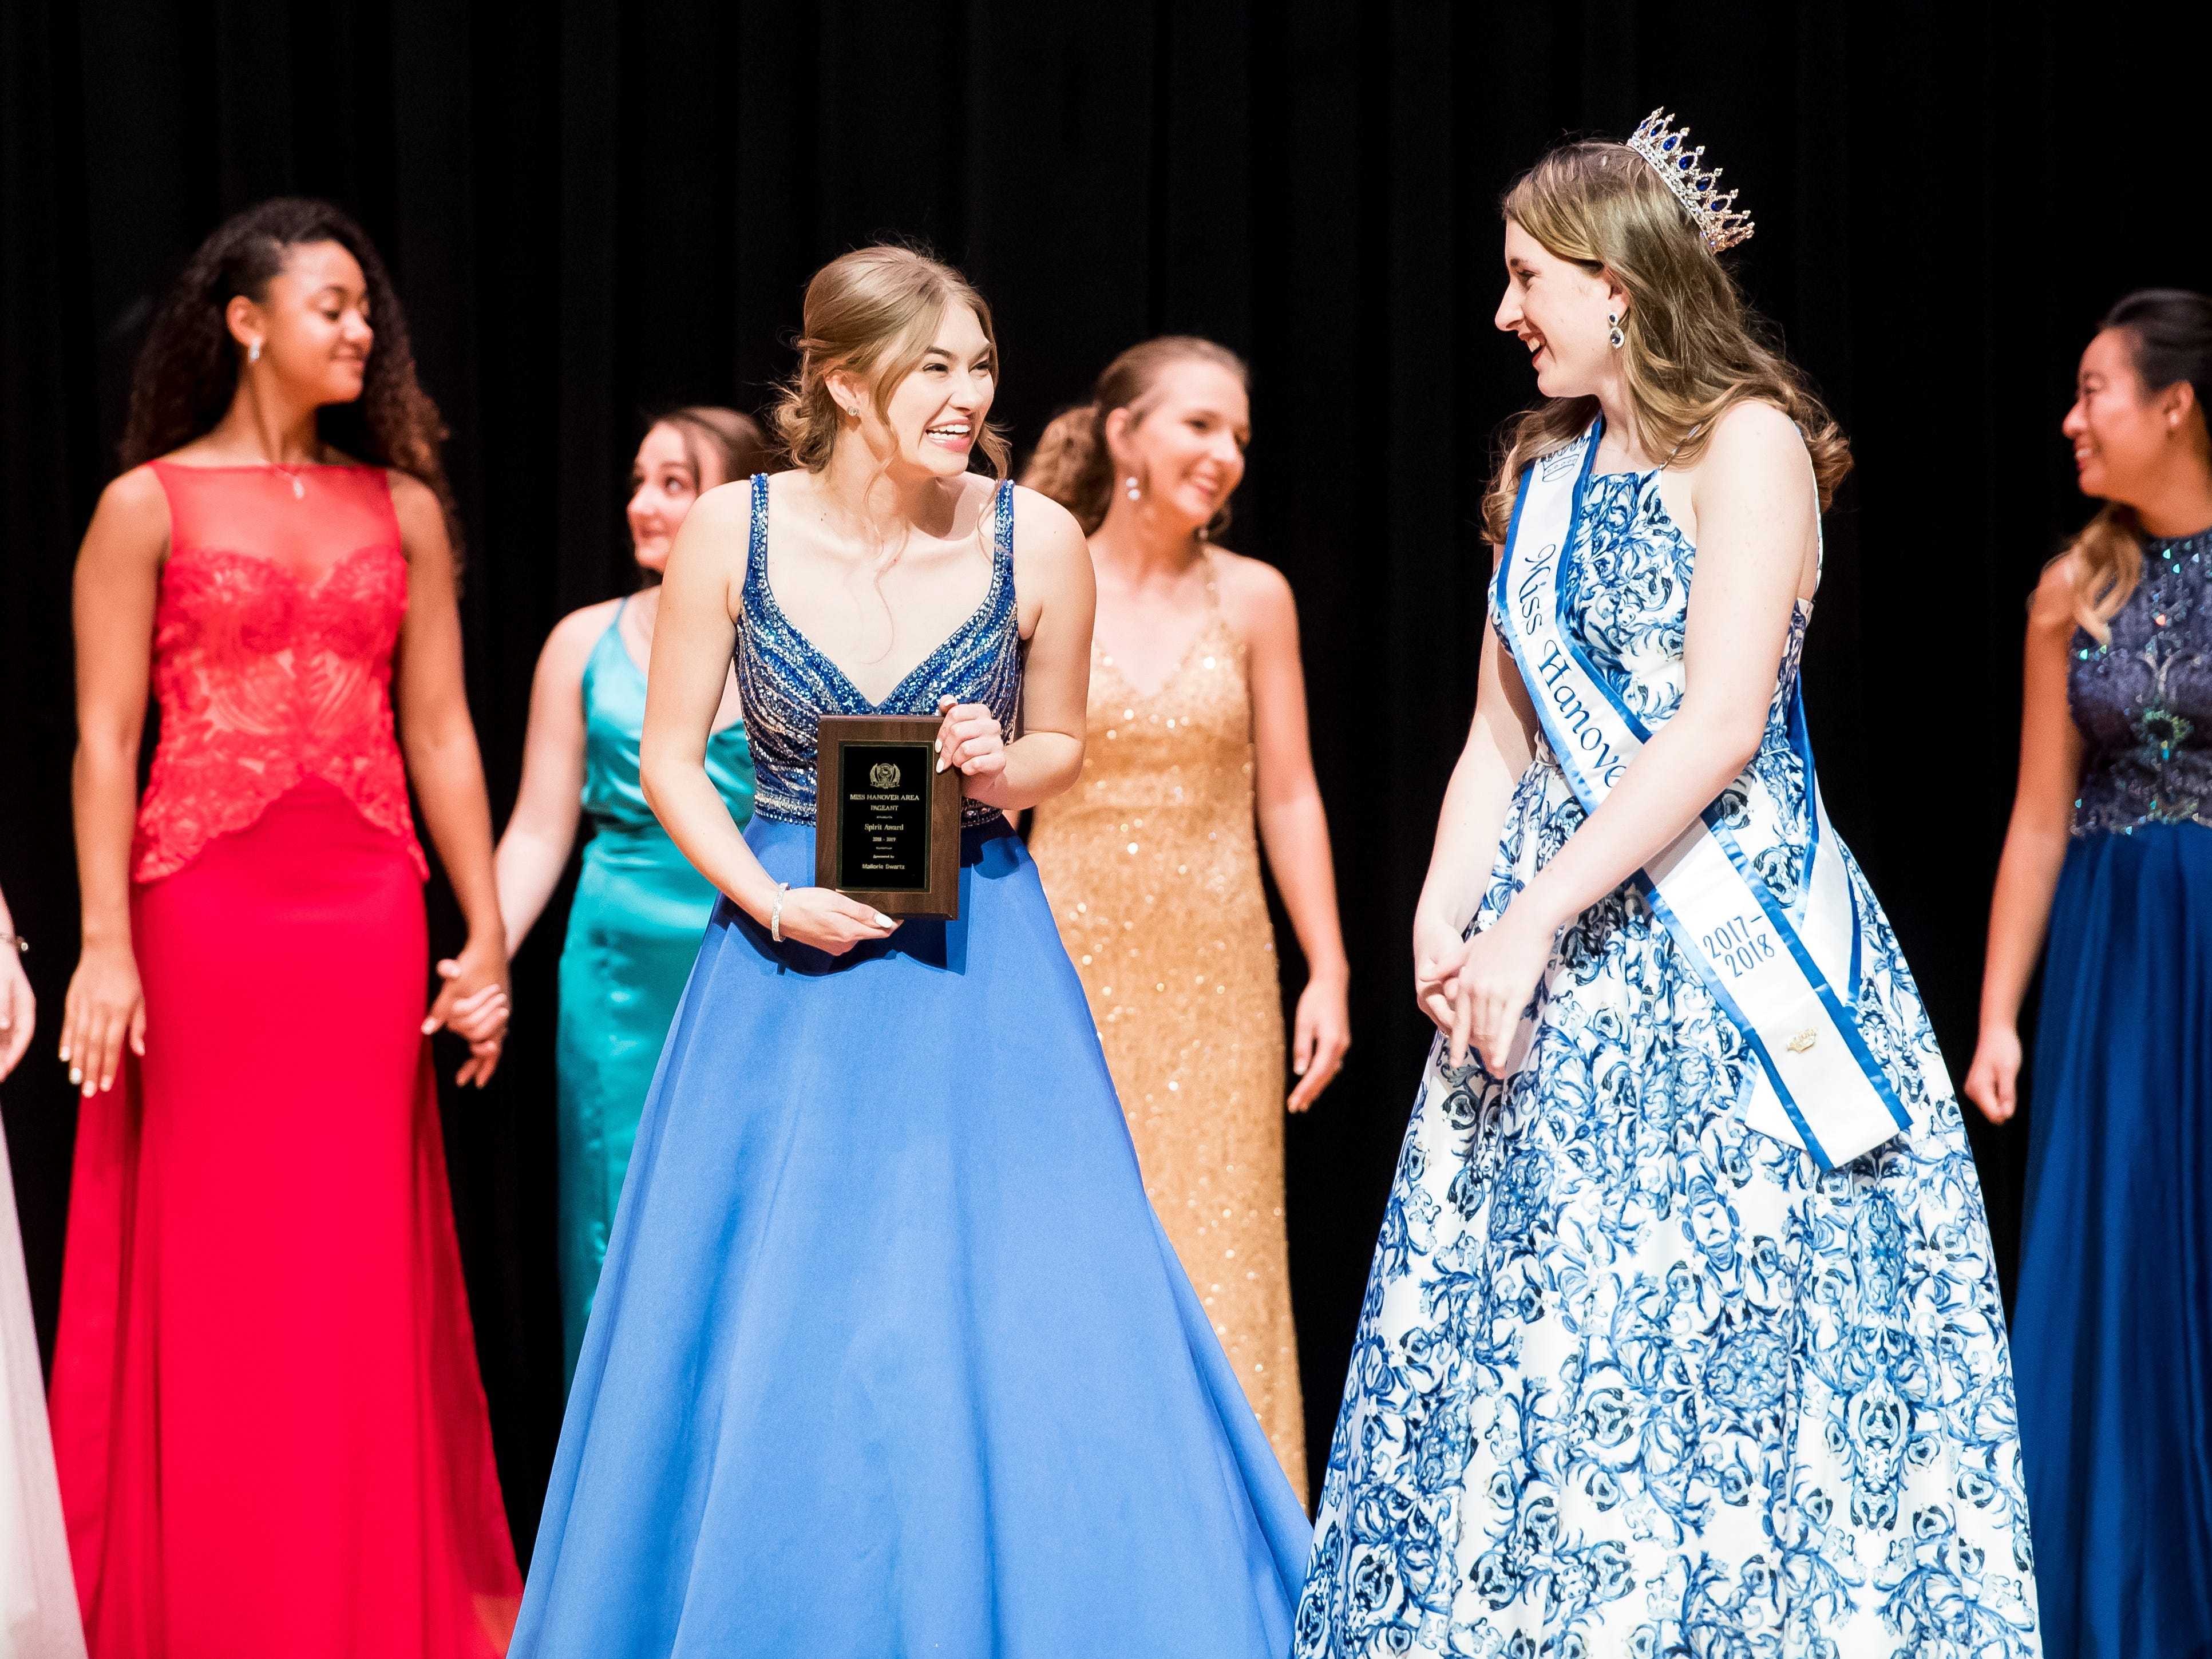 Corrine Beil reacts after winning the spirit award at the 50th Miss Hanover Area pageant on Monday, October 22, 2018.